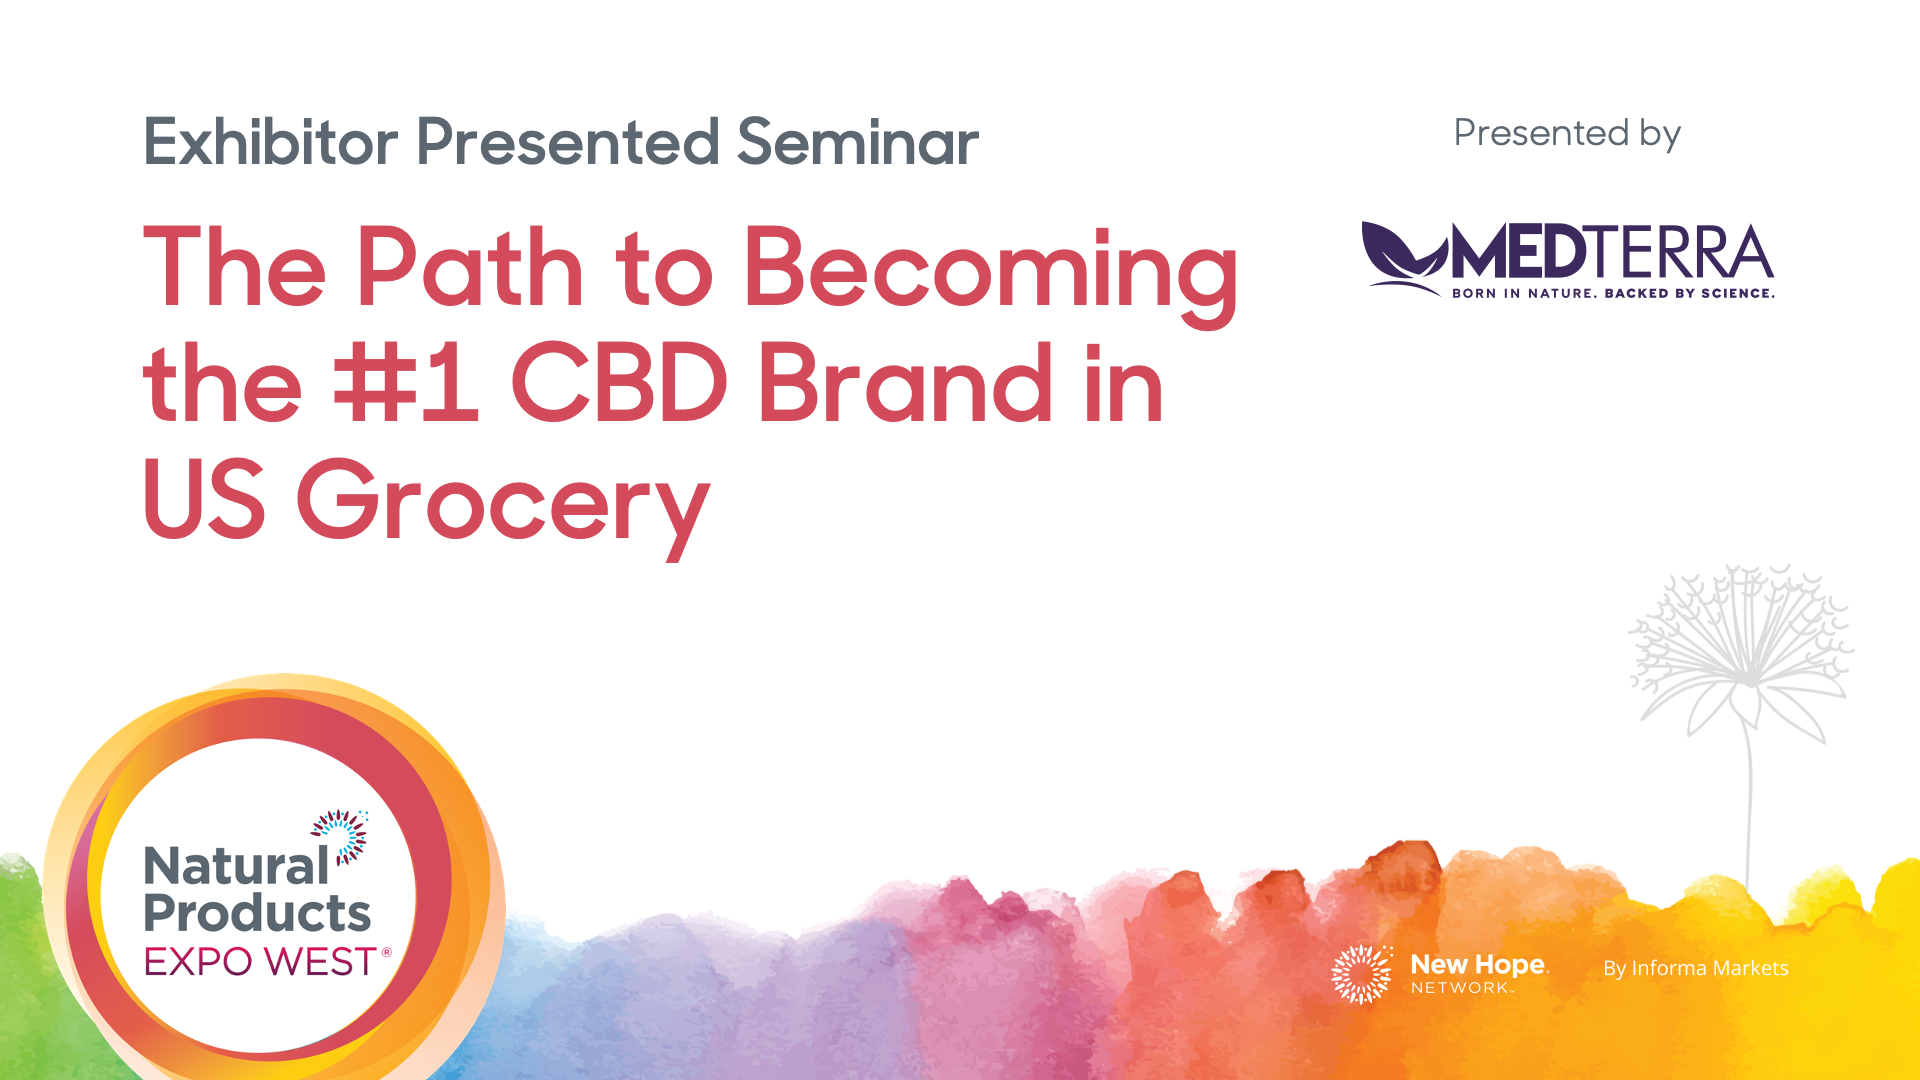 The Path to Becoming the #1 CBD Brand in US Grocery